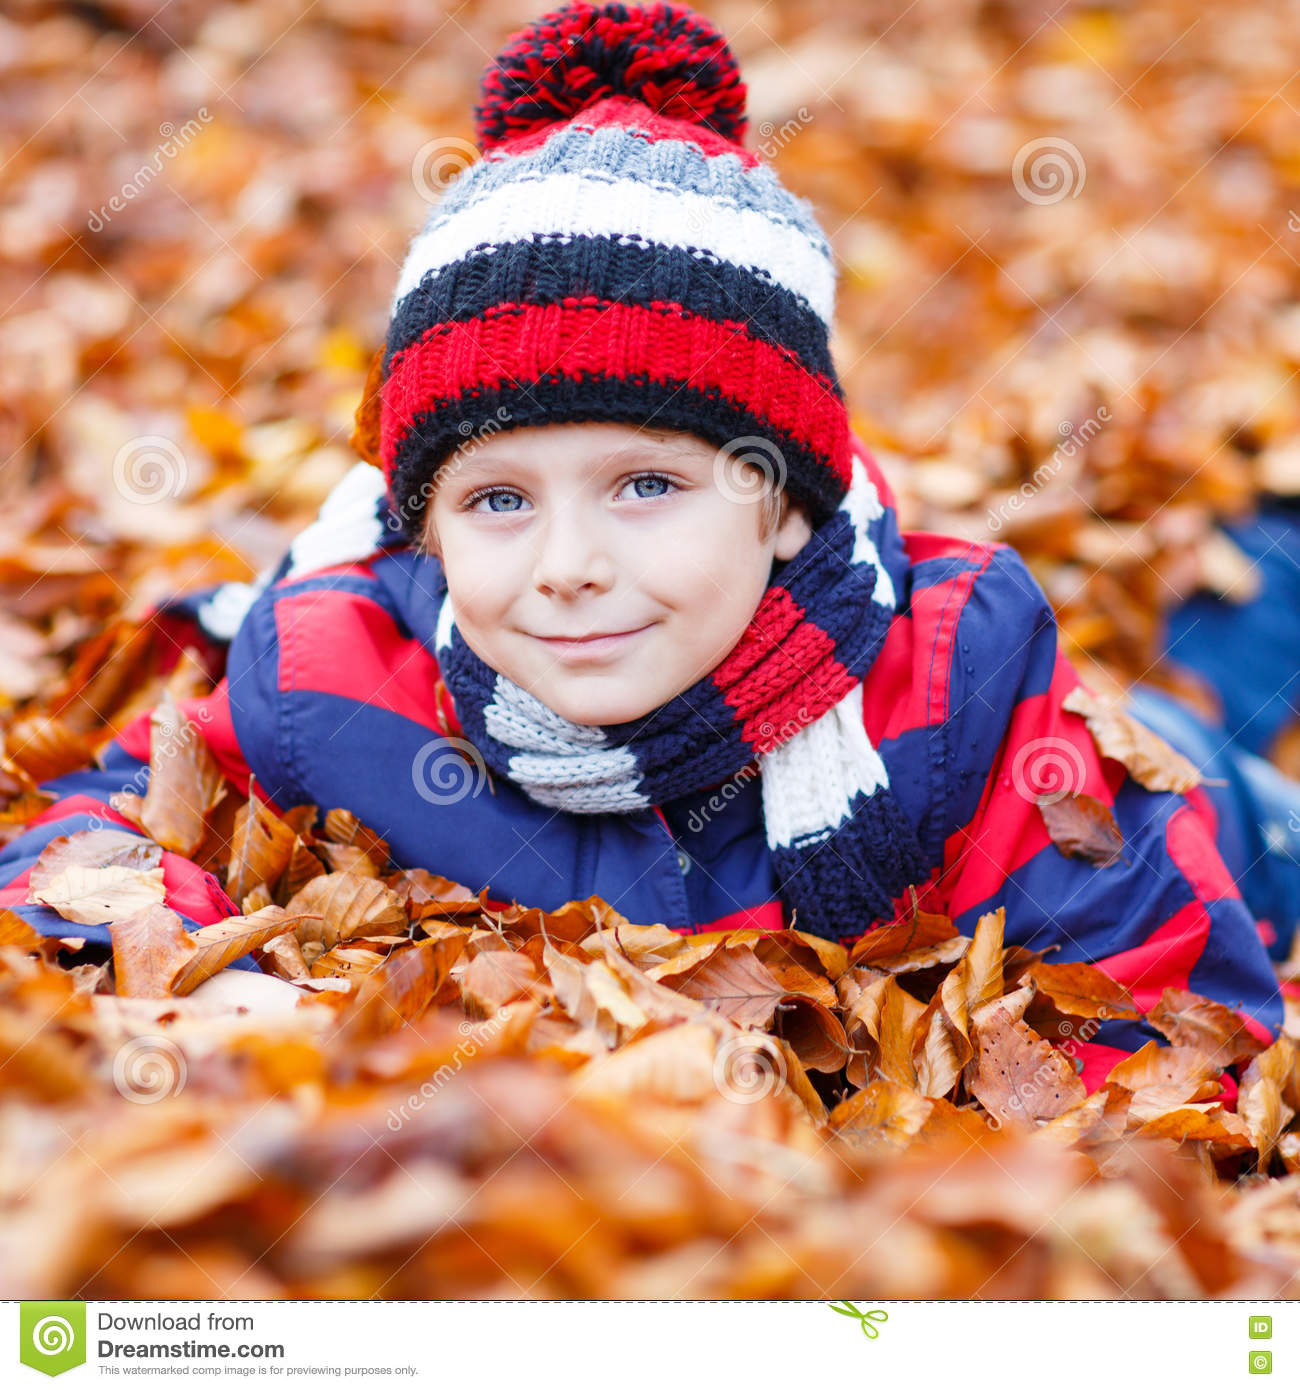 6096f68d48c Funny child having fun in fall forest or park on cold day. With hat and  scarf